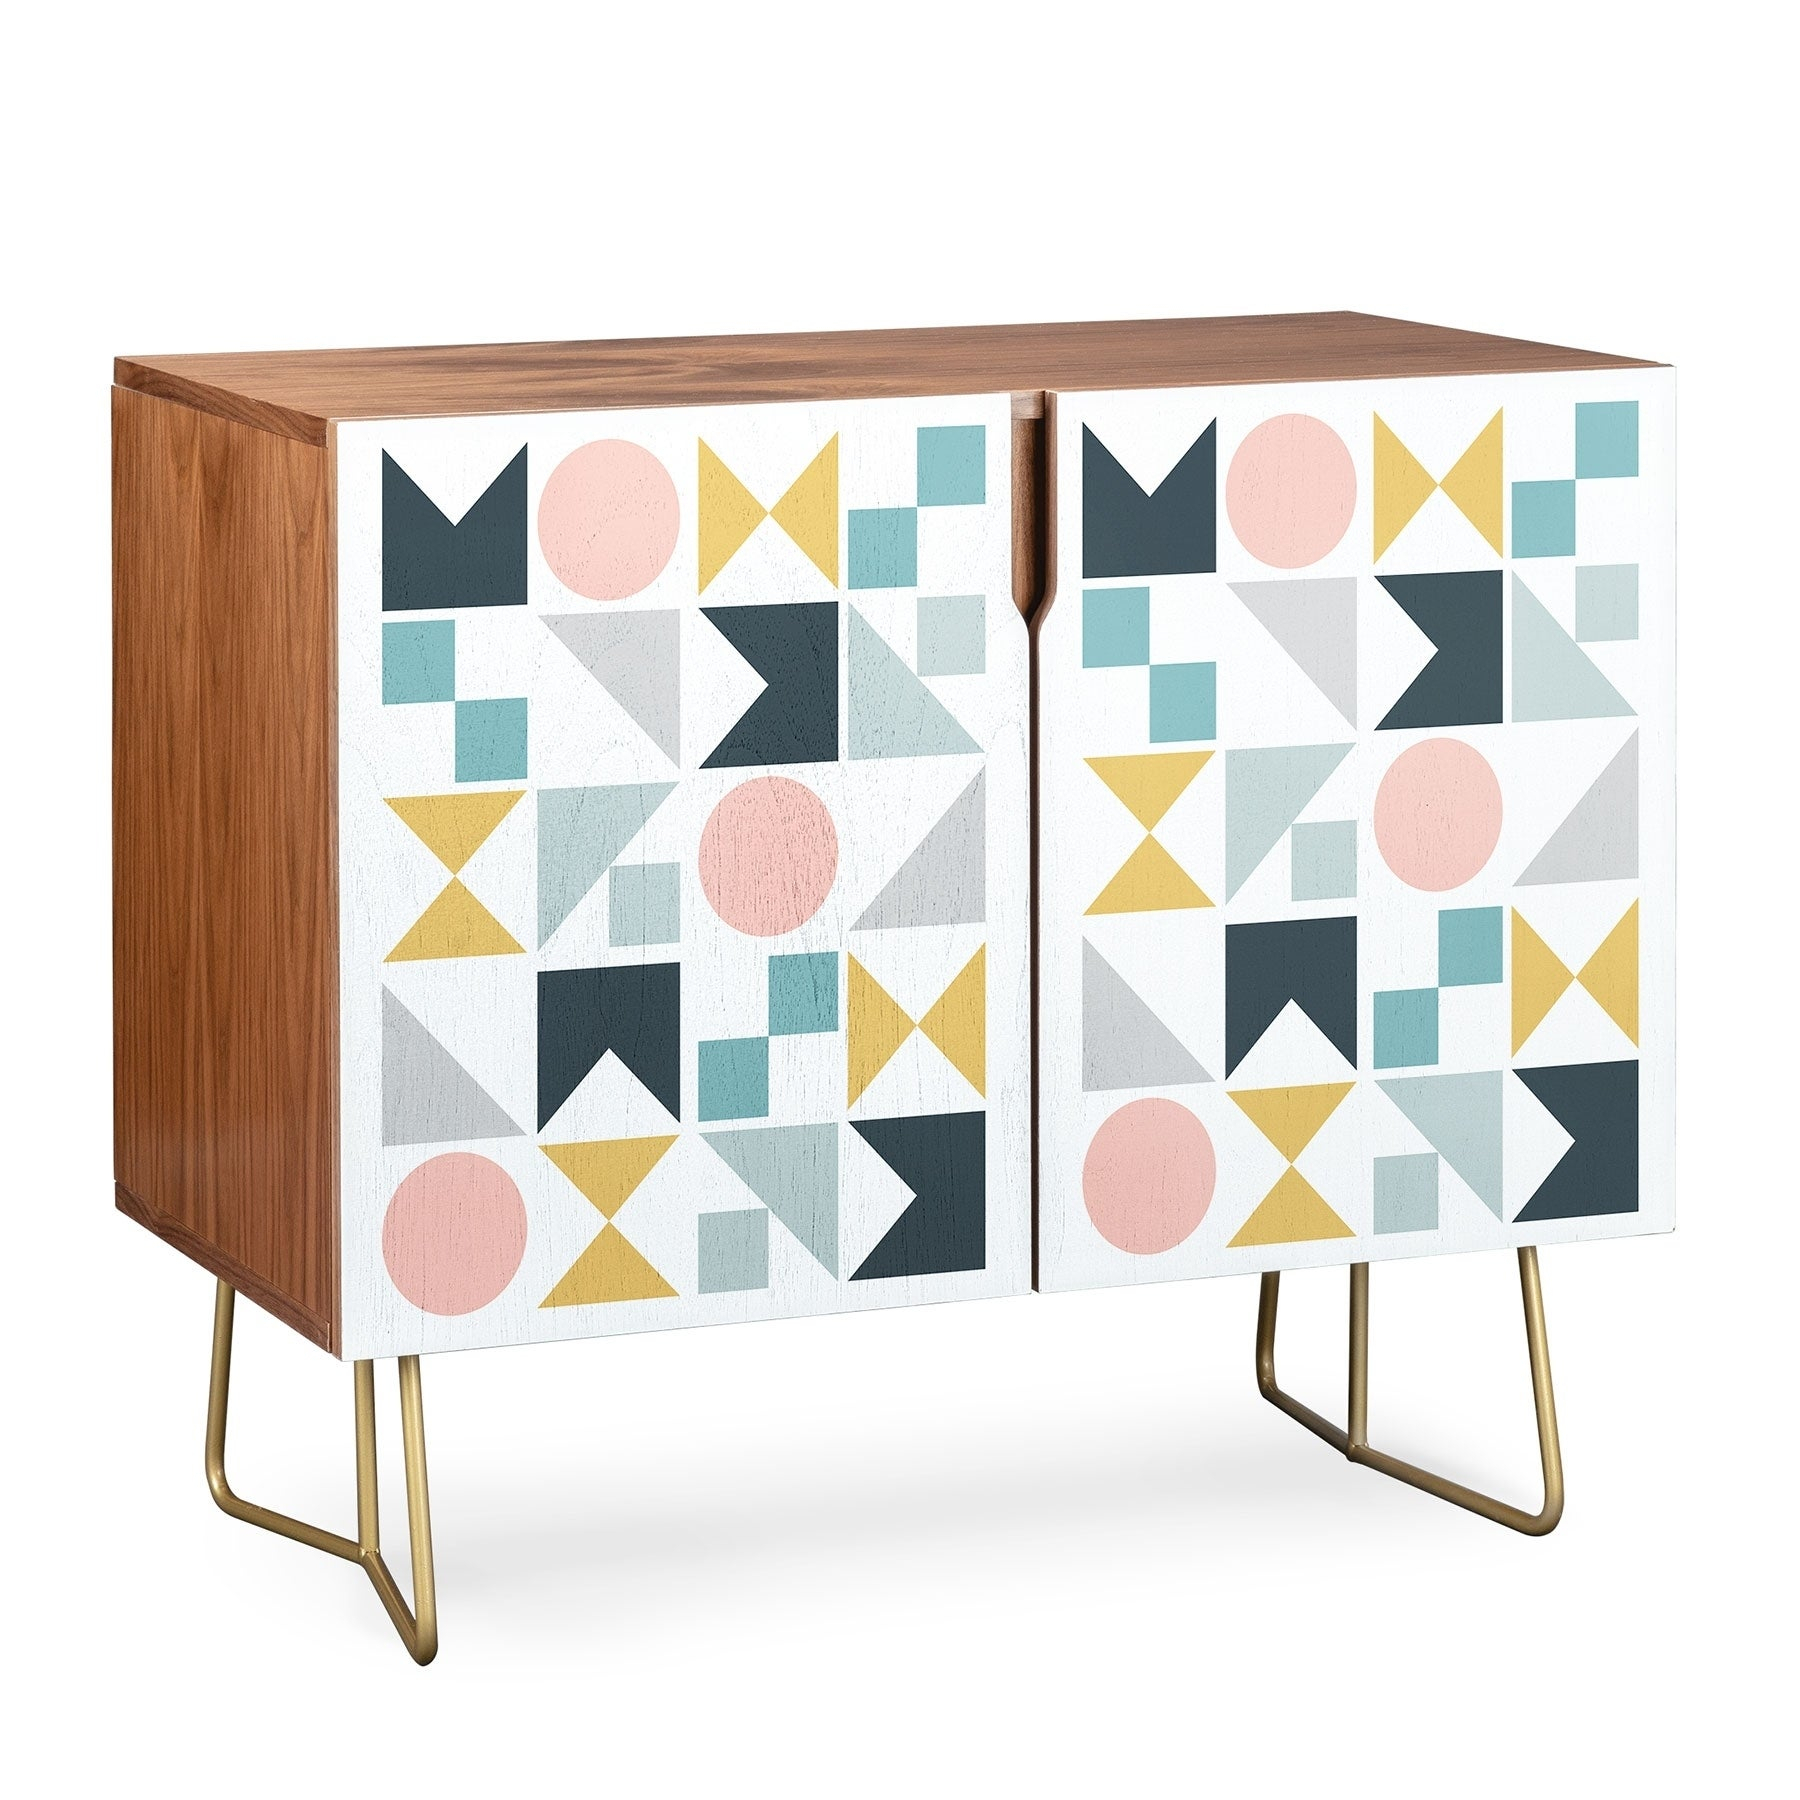 Deny Designs Modern Geometric Credenza (Walnut Or Birch, 2 Leg Options) Intended For Modele 7 Geometric Credenzas (Photo 7 of 30)